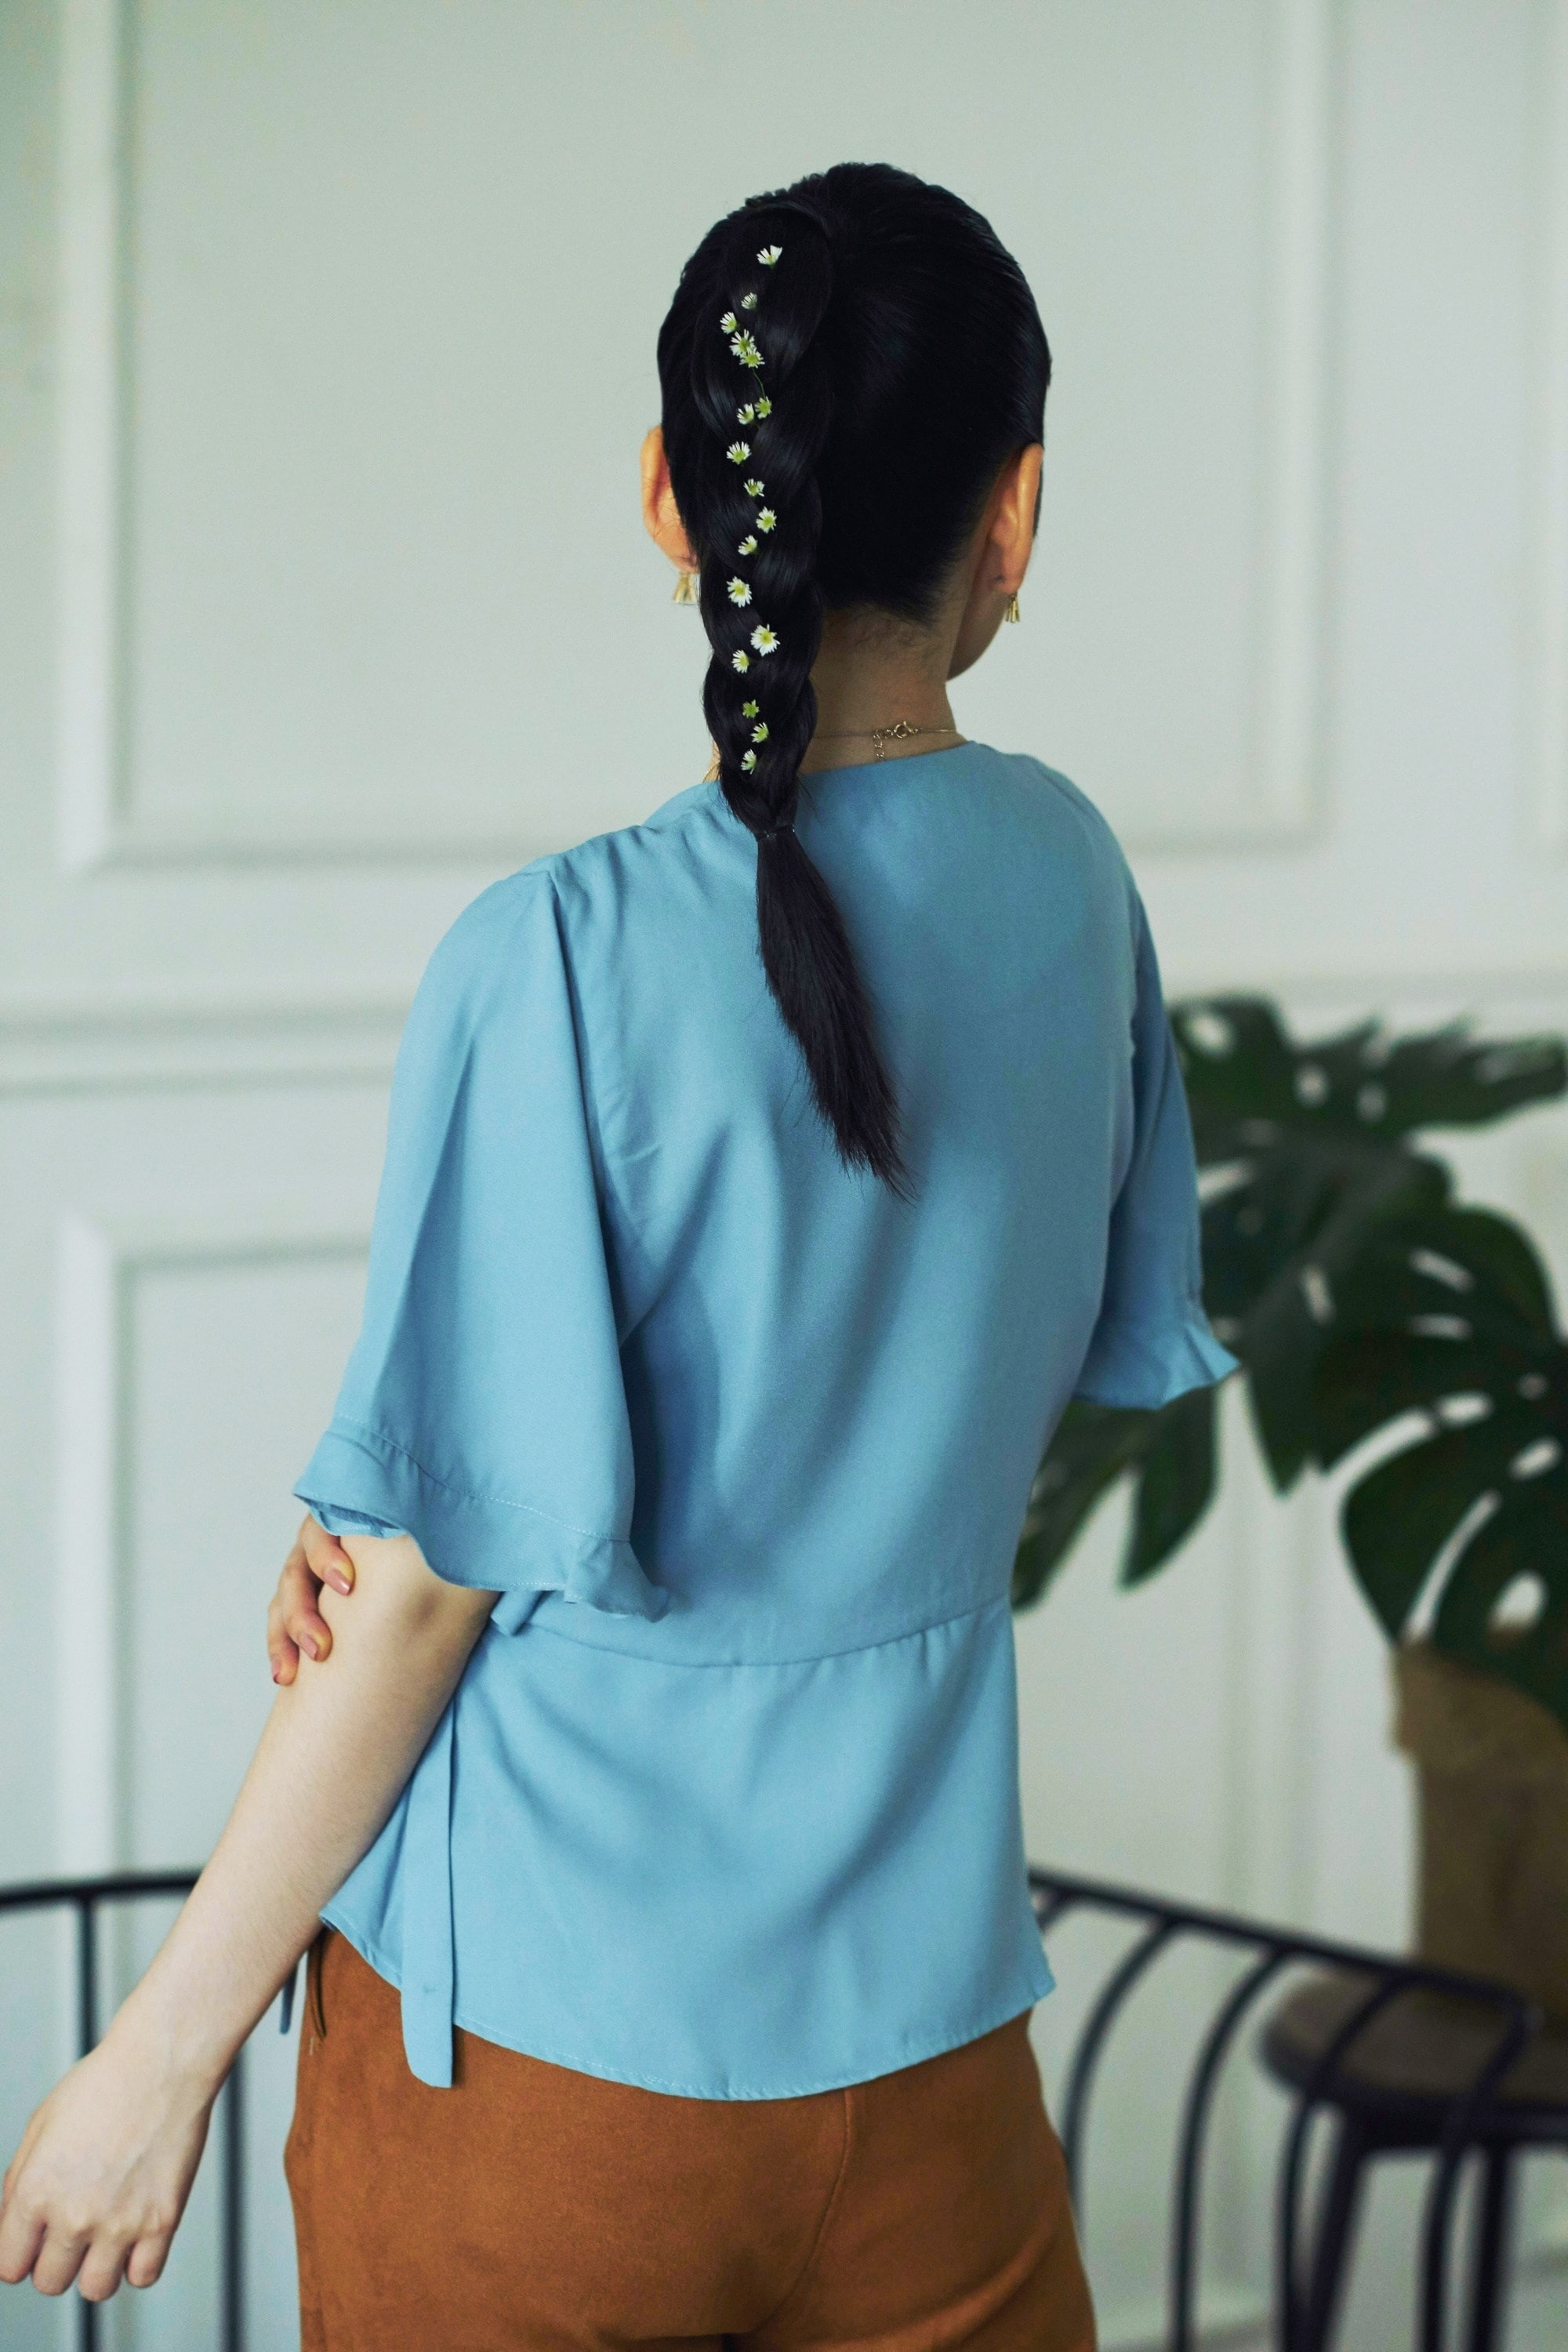 Back shot of an Asian woman with braid ponytail wearing a blue blouse